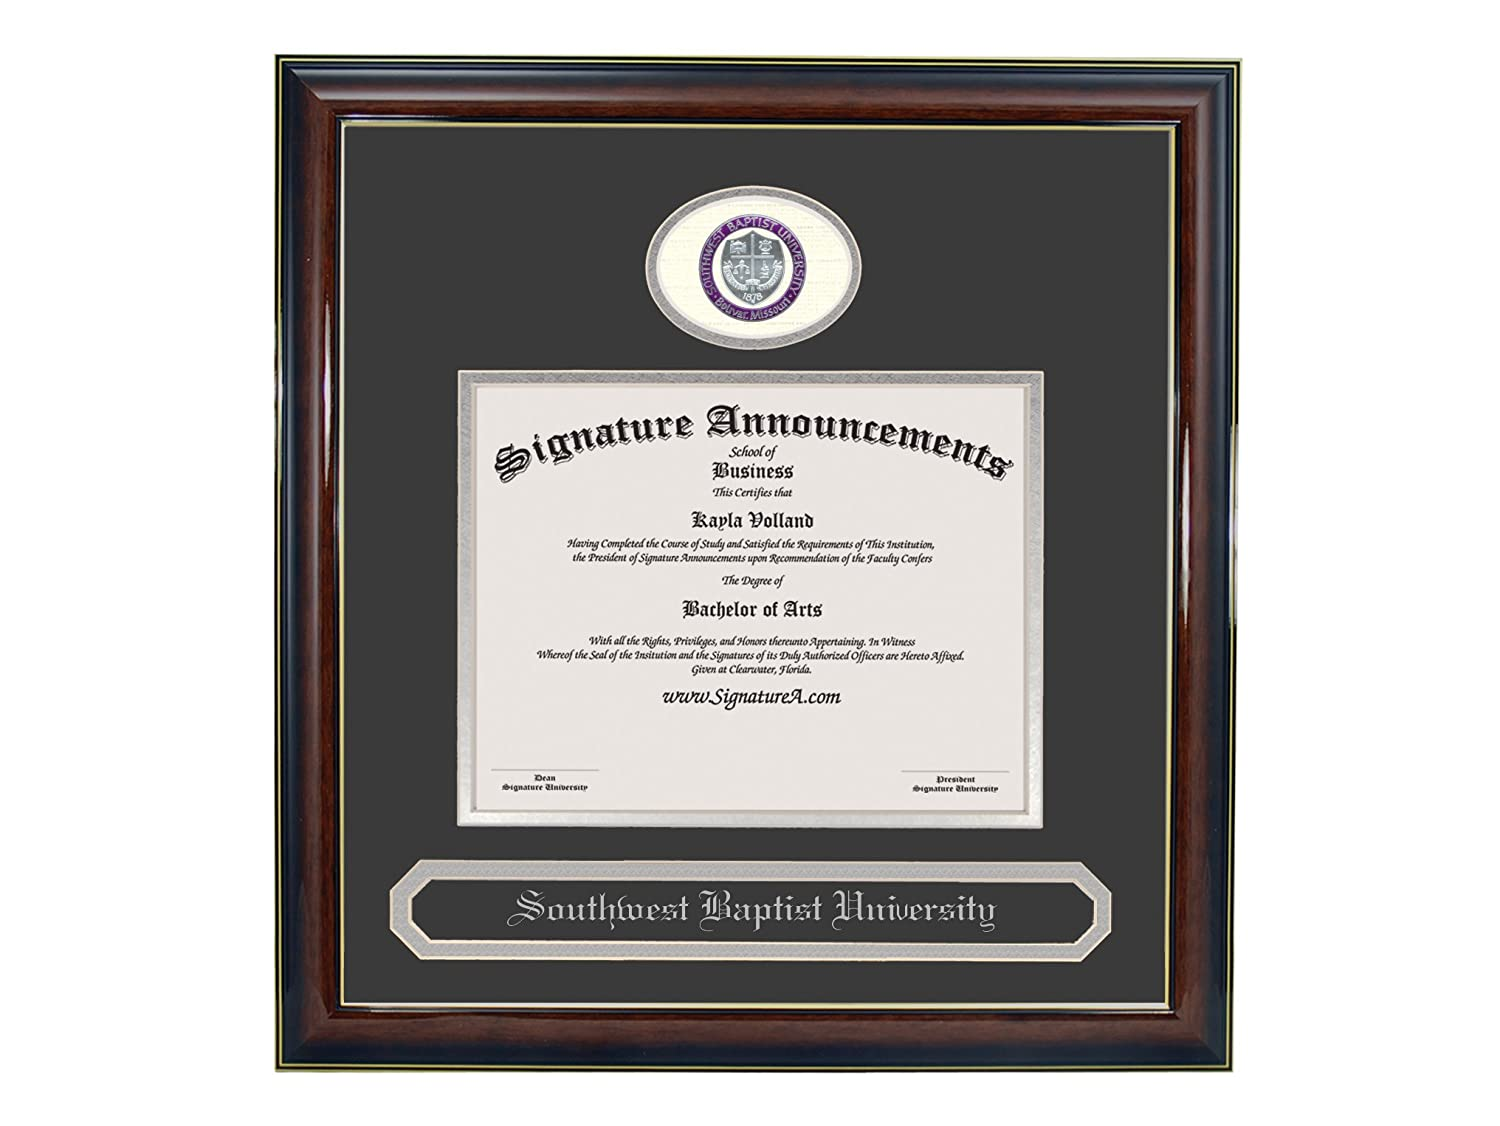 Signature Announcements Southwest Baptist University Undergraduate Sculpted Foil Seal /& Name Graduation Diploma Frame 16 x 16 Gloss Mahogany with Gold Accent